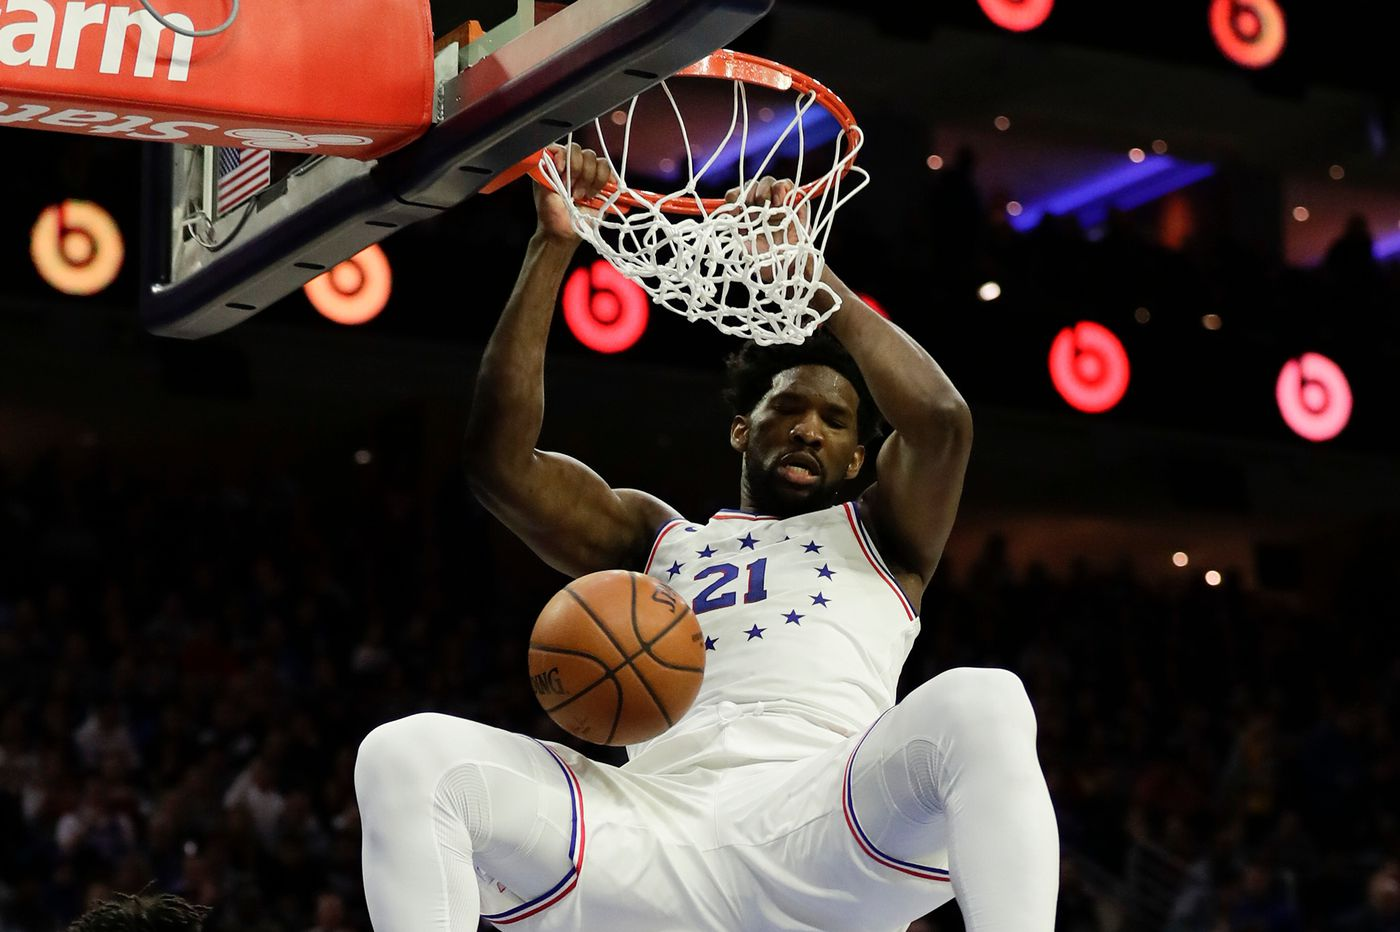 Joel Embiid to miss Saturday's game vs. Warriors due to knee tendinitis